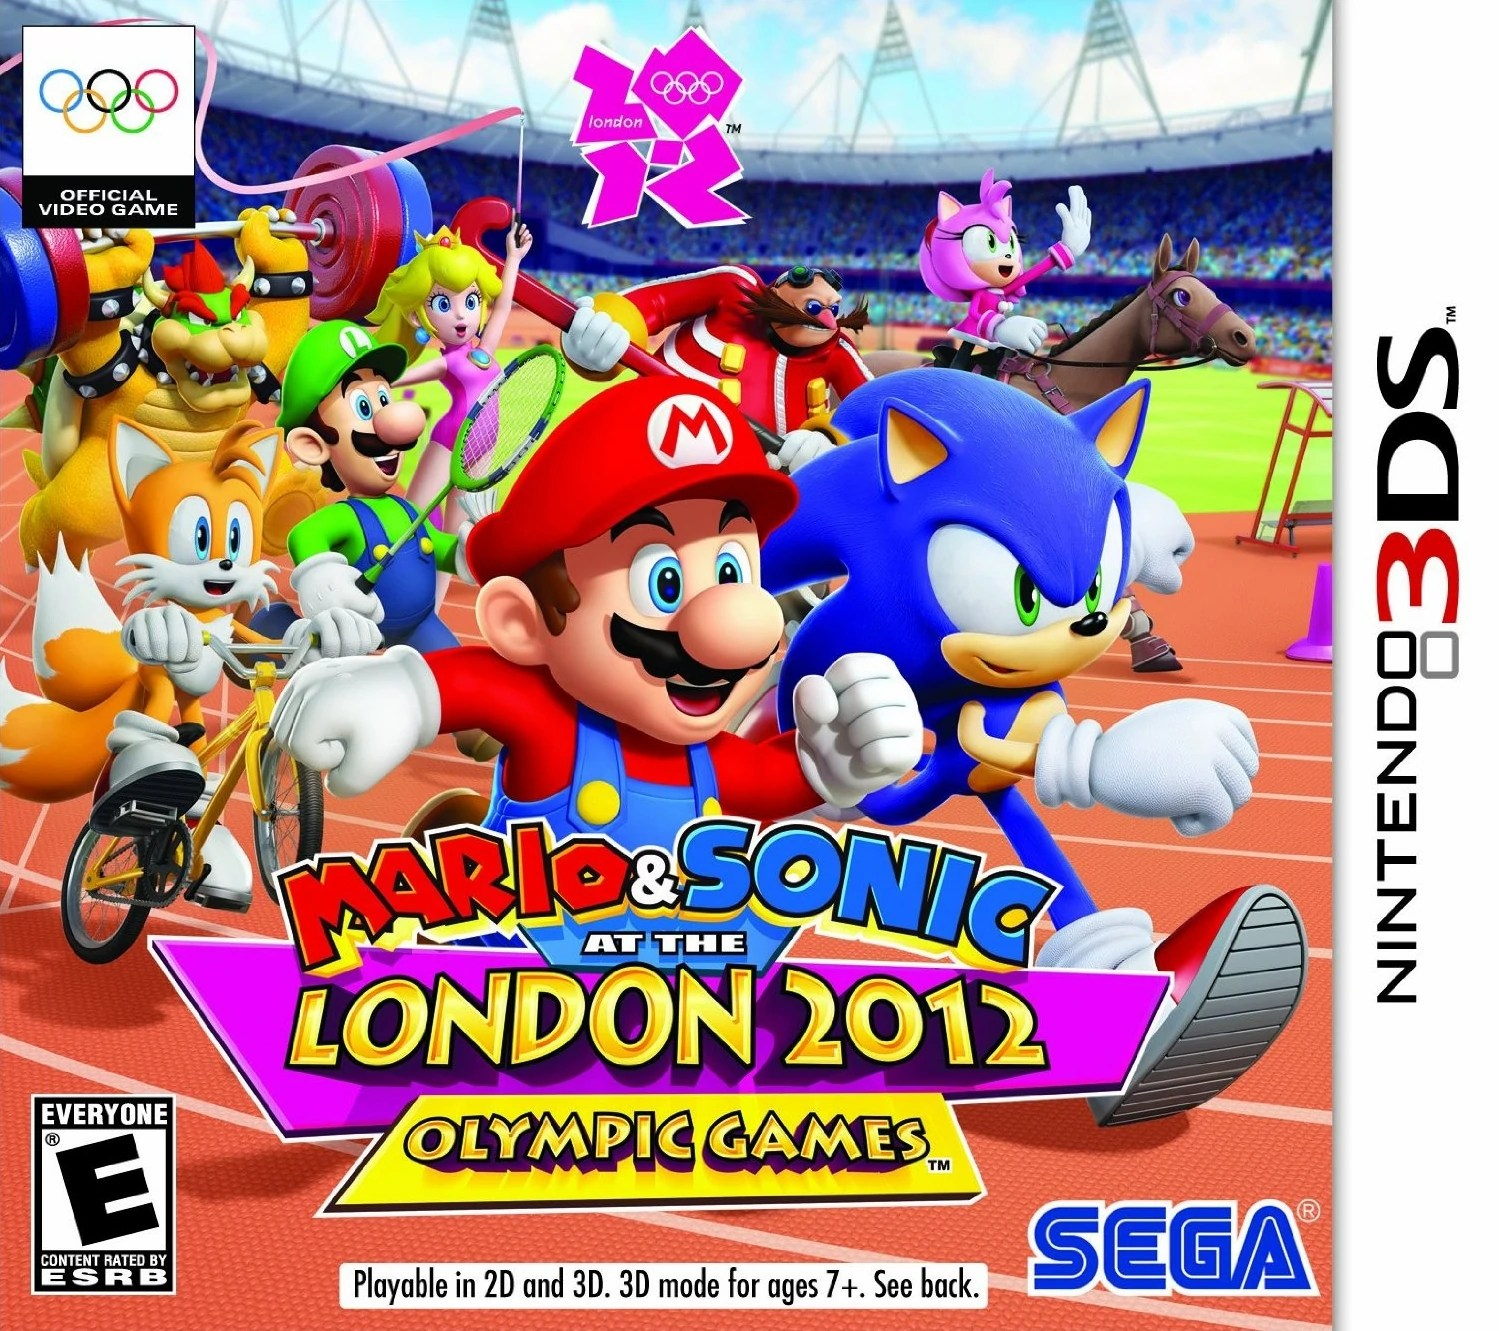 Mario And Sonic At The London 2012 Olympic Games Nintendo 3DS Wiki Fandom Powered By Wikia